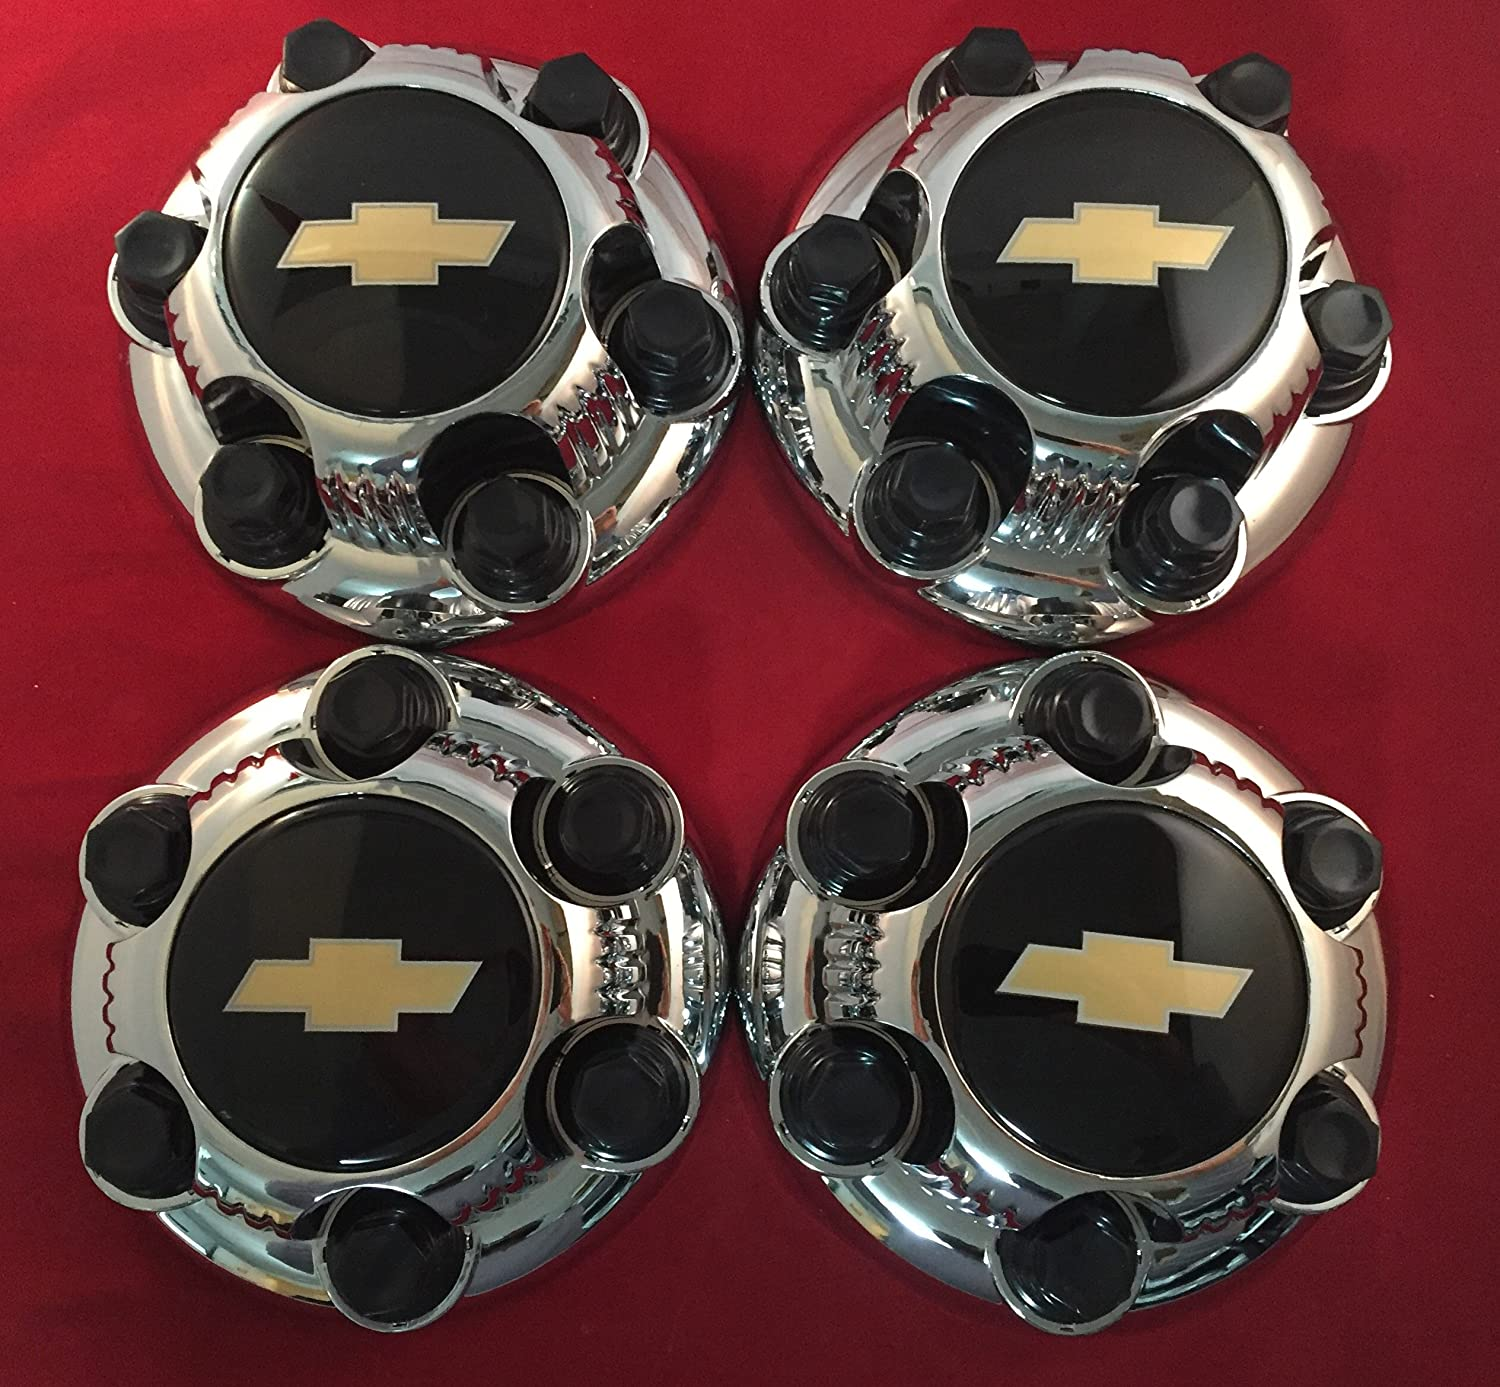 4 Piece Set Chrome Chevy Silverado 6 Lug 1500 Center Caps 16' 17' Steel wheels Black Logo Replacement 5129C